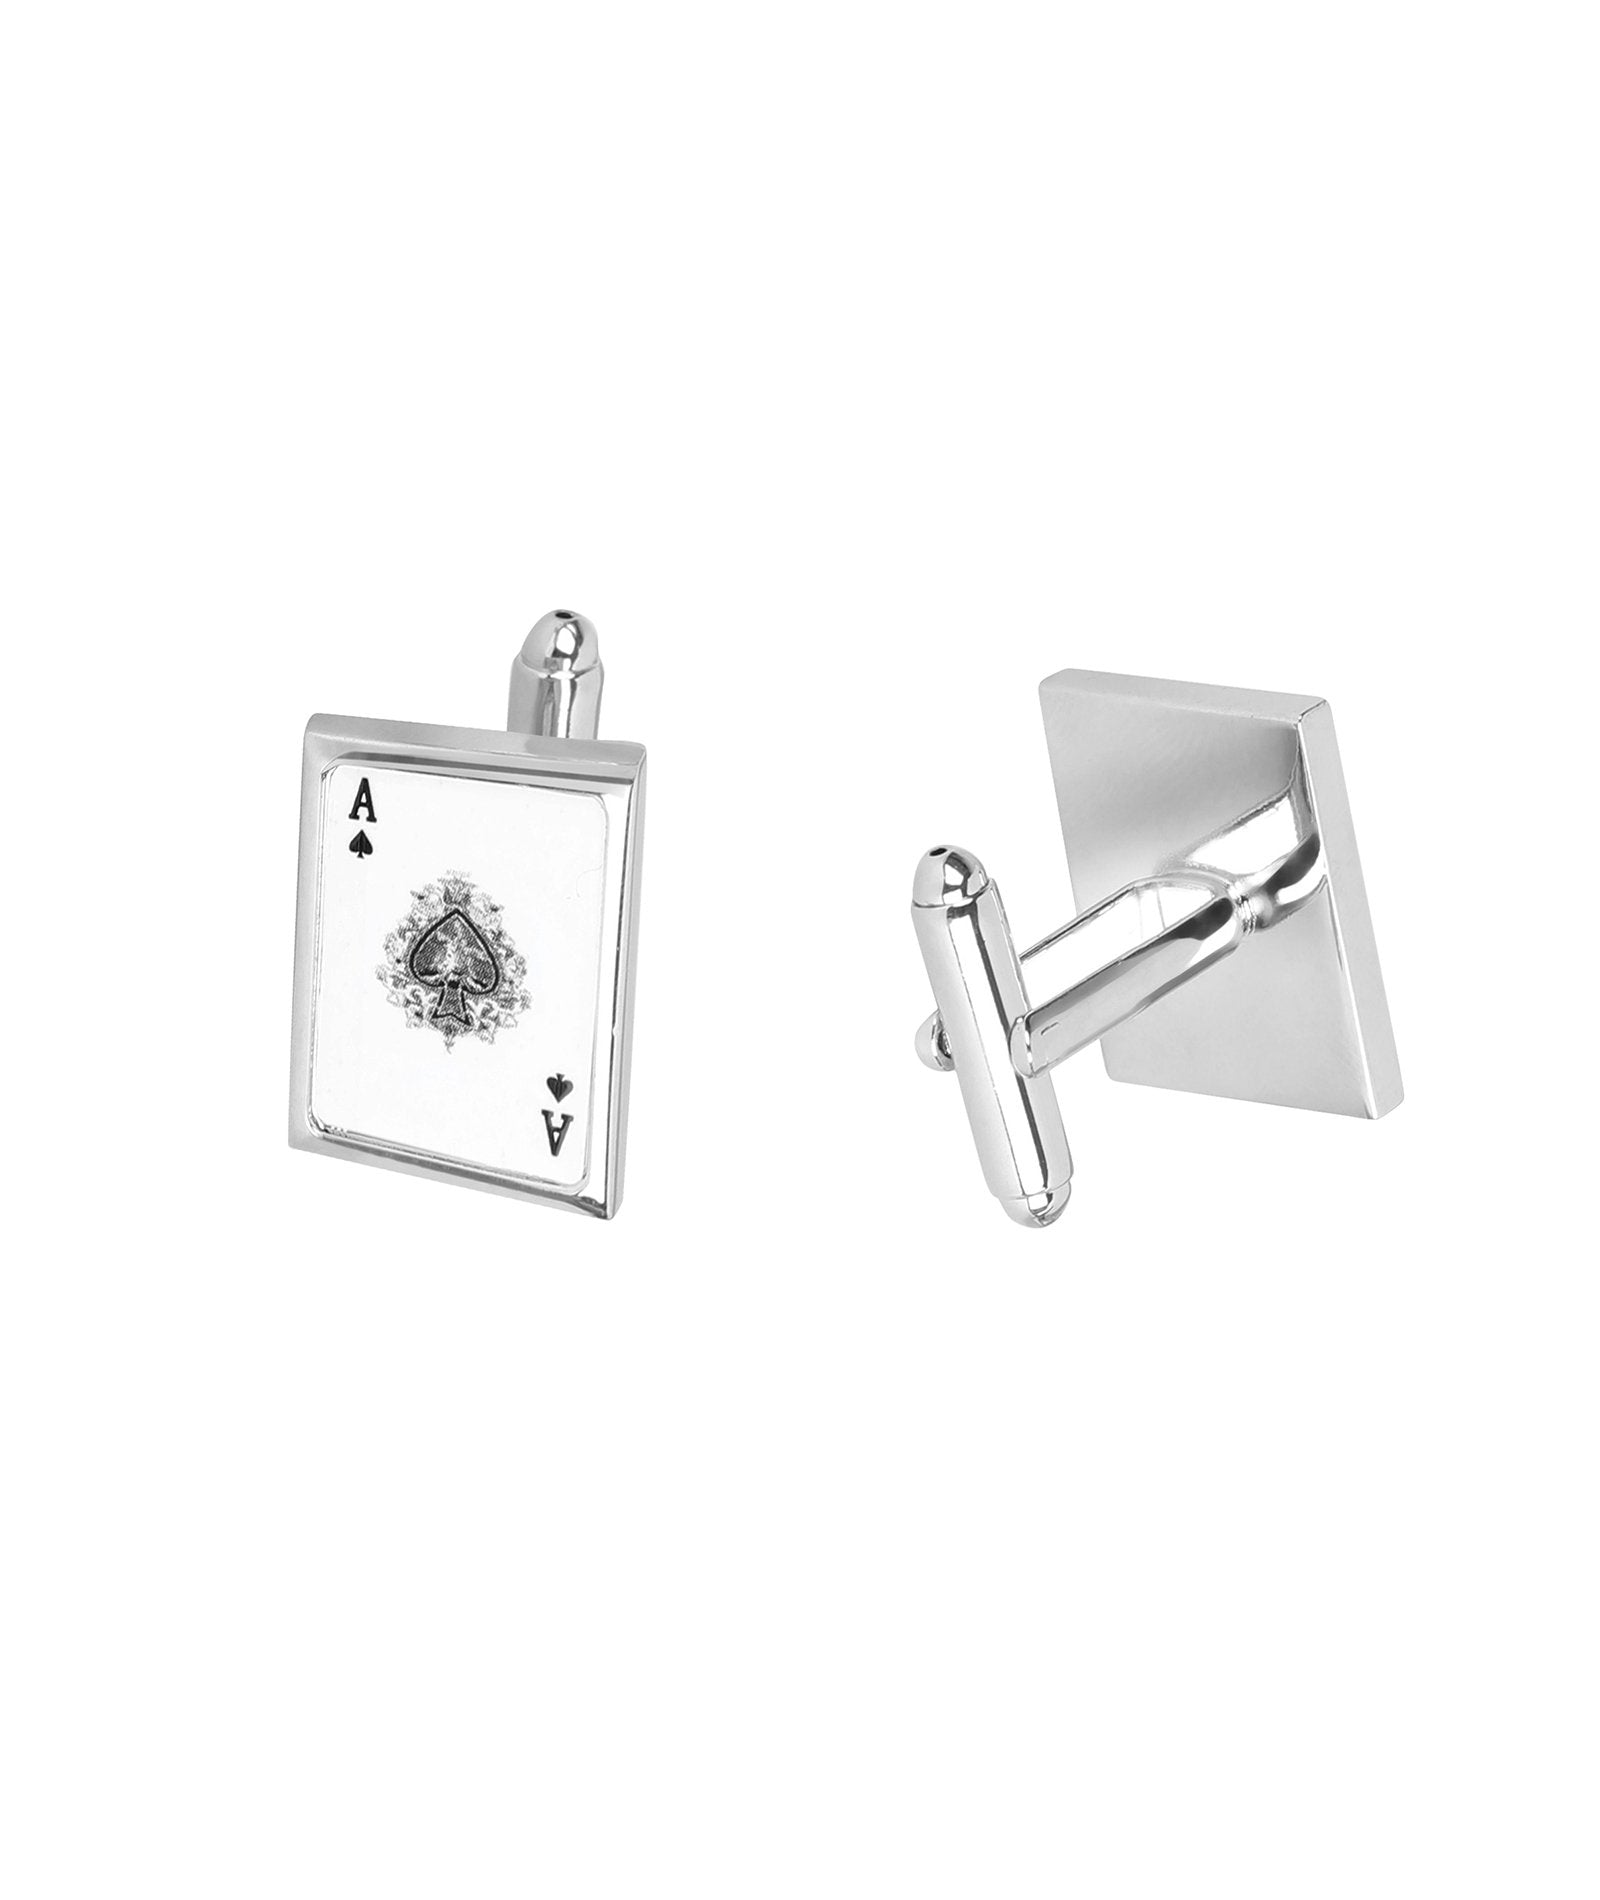 Ace King Card Cufflink